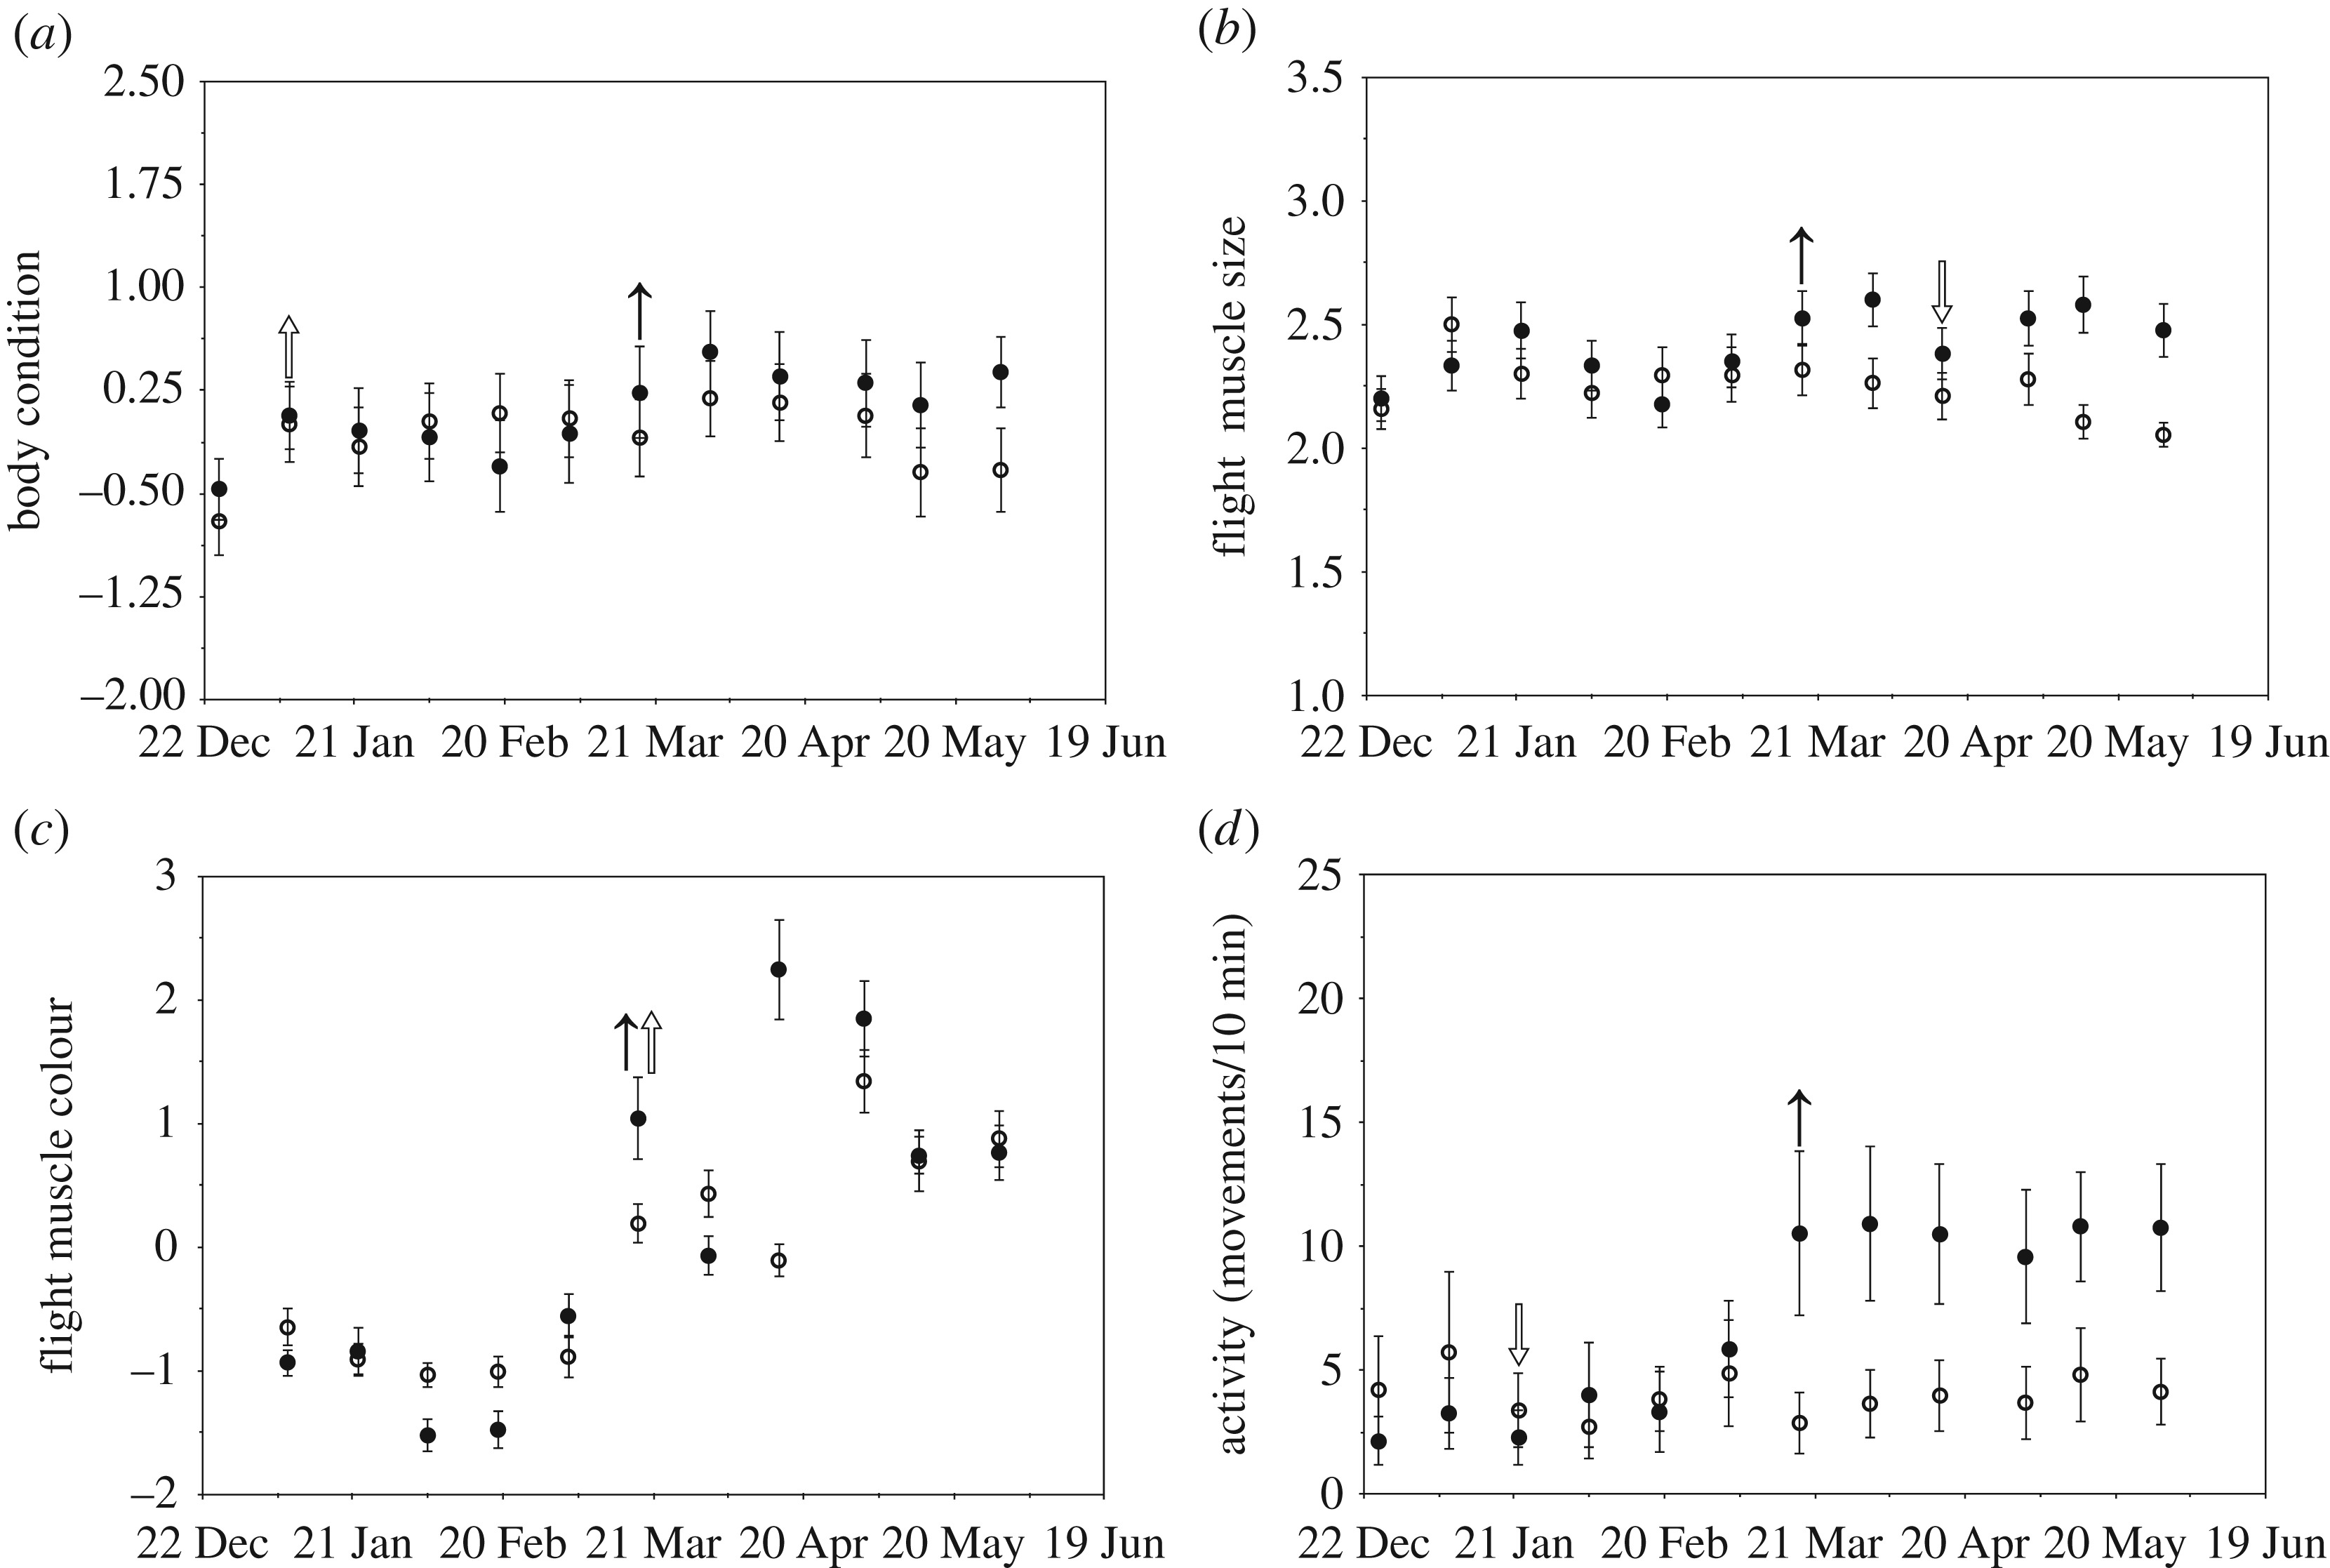 Increasing photoperiod stimulates the initiation of spring